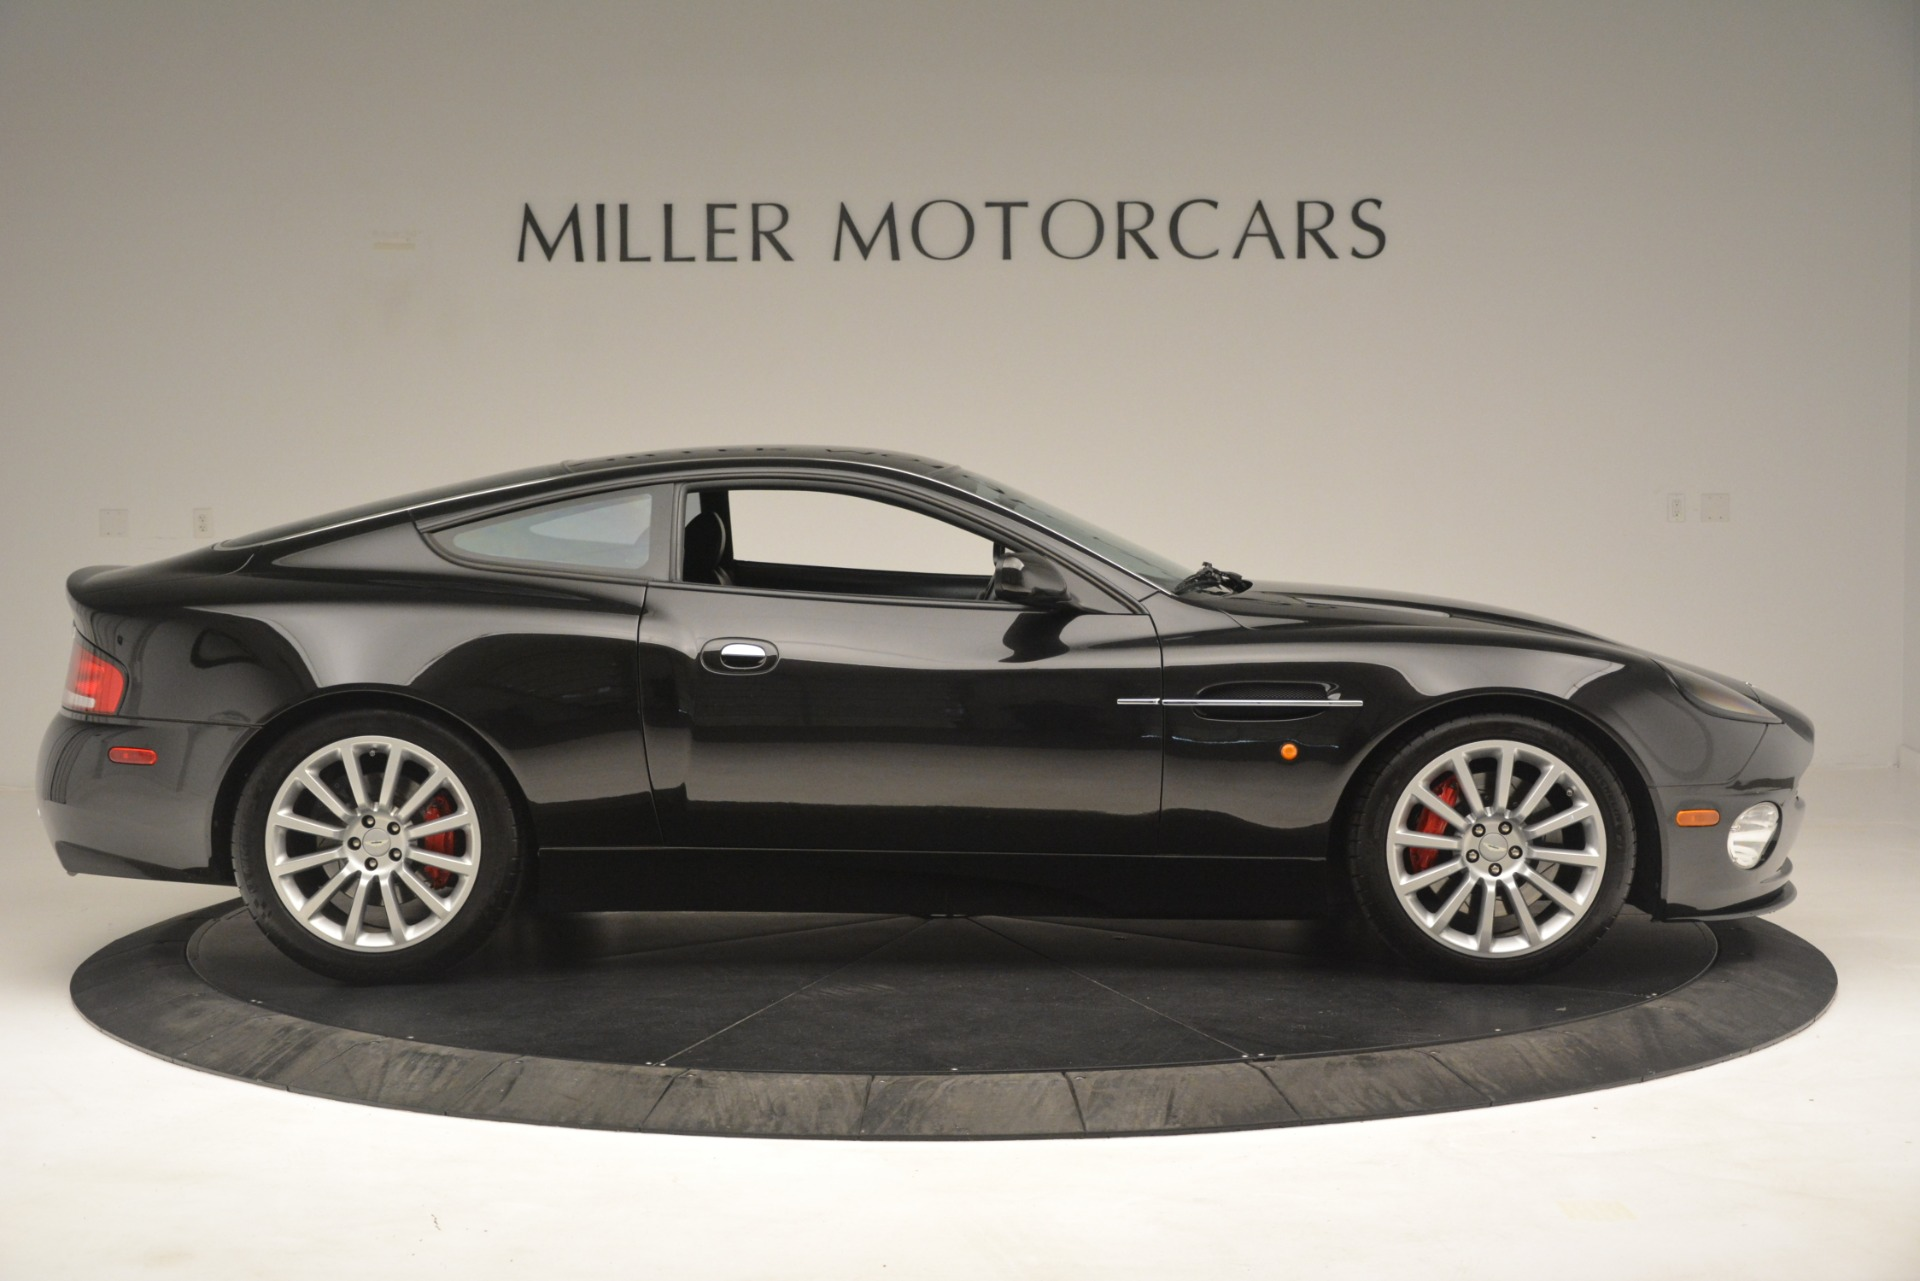 Pre Owned 2004 Aston Martin V12 Vanquish For Sale Special Pricing Aston Martin Of Greenwich Stock 7557c